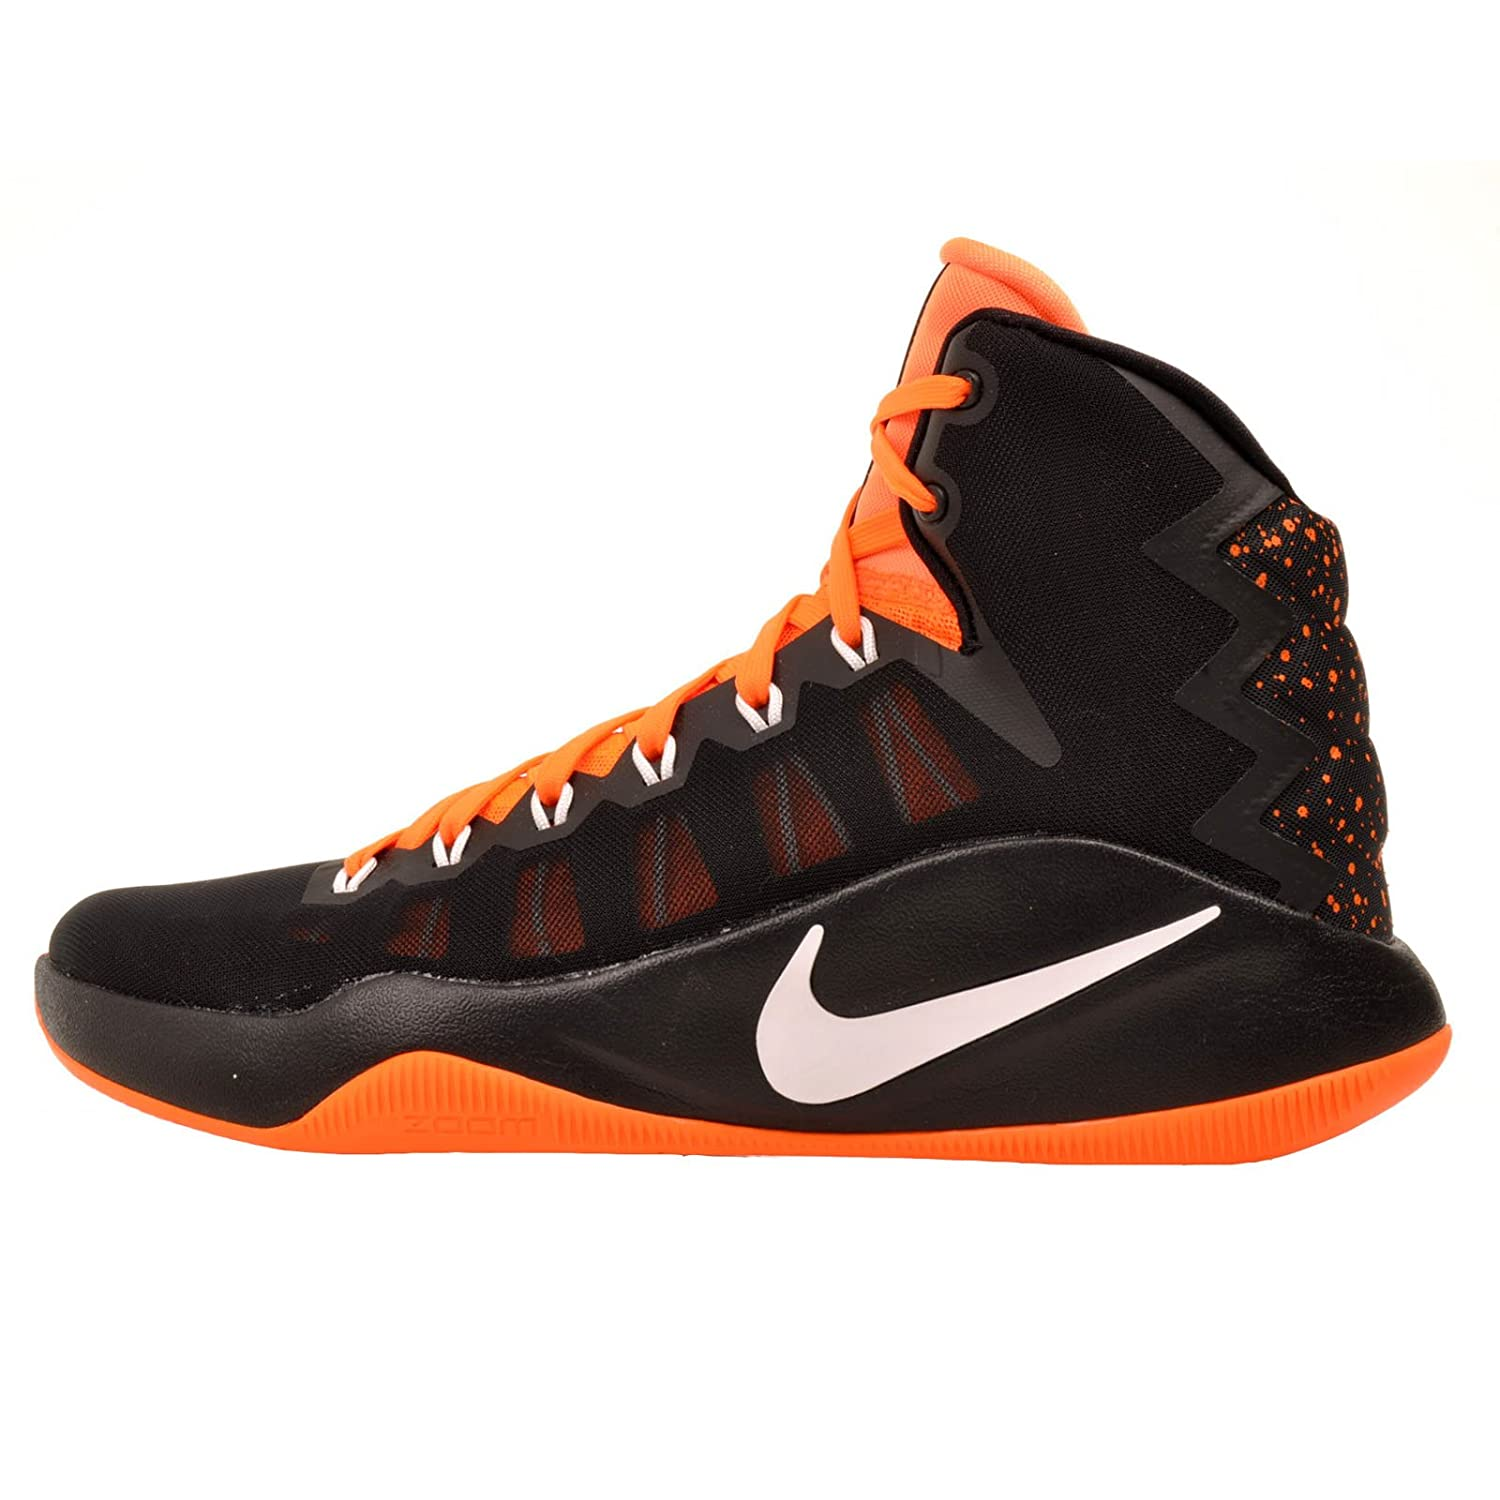 reputable site 9279f fe6a6 Amazon.com   Nike Men s Hyperdunk Black Wolf Grey Bright Orange Hyperdunk  2016 SE Basketball Shoes, Size 12 M (US)   Basketball